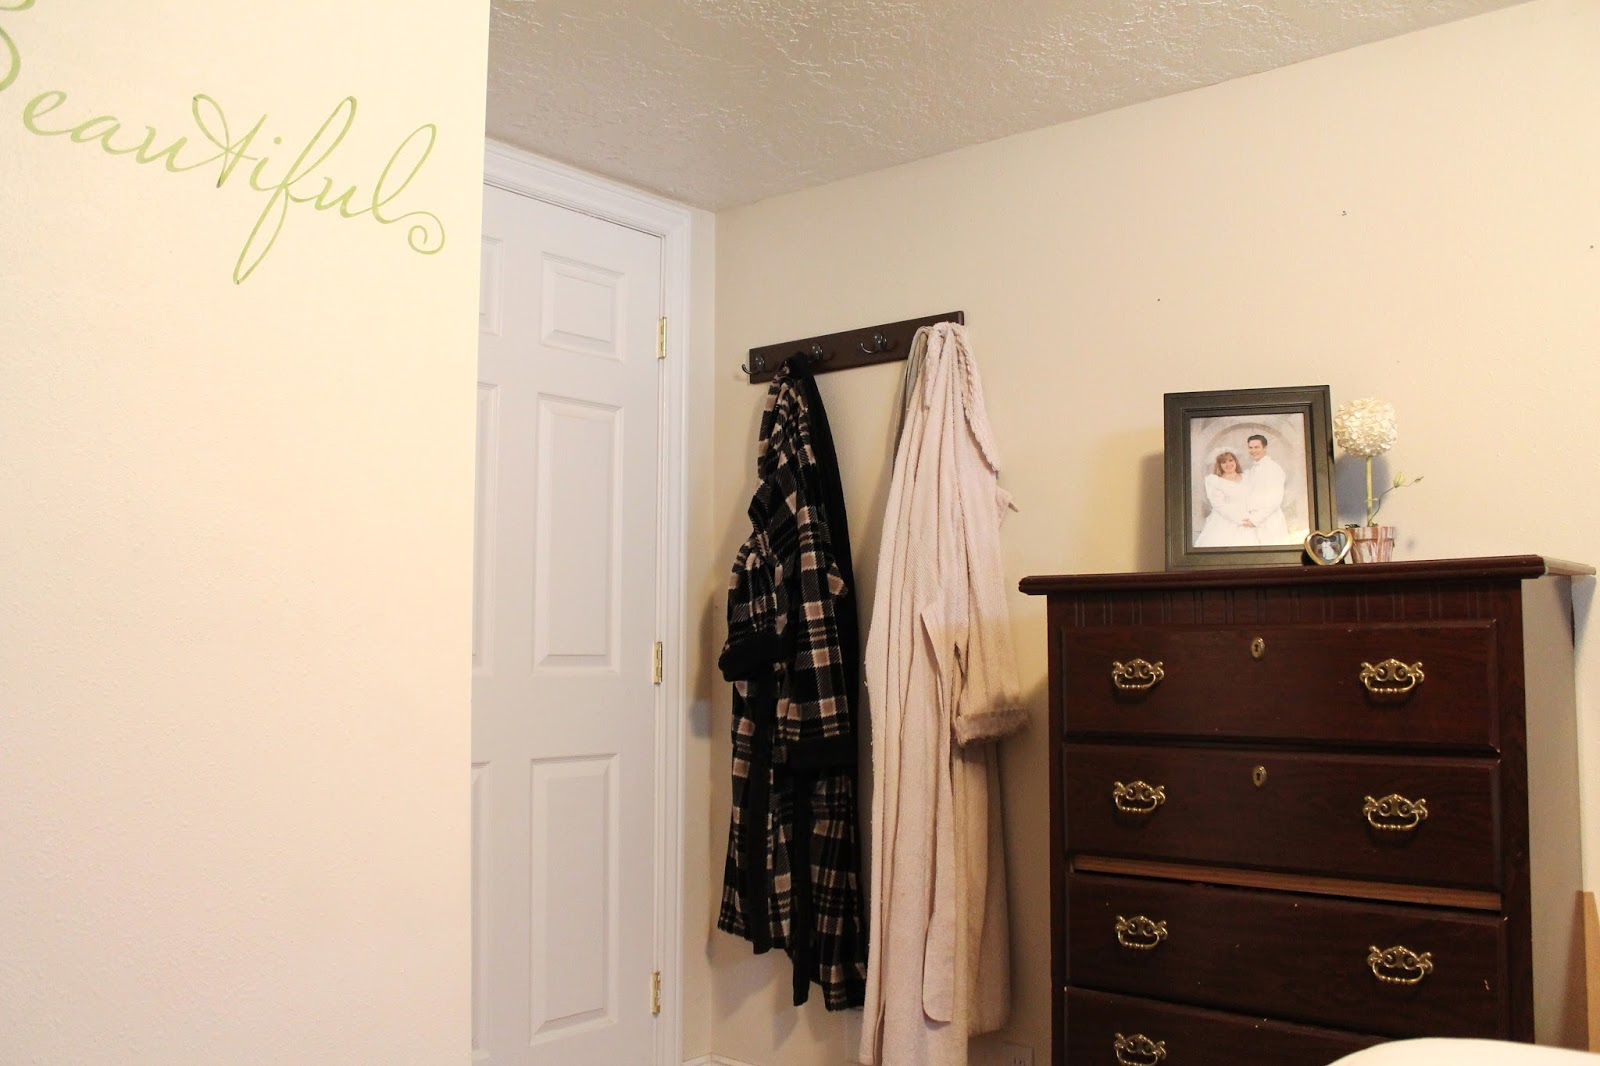 we re purposed some hooks and made a spot for robes behind the door